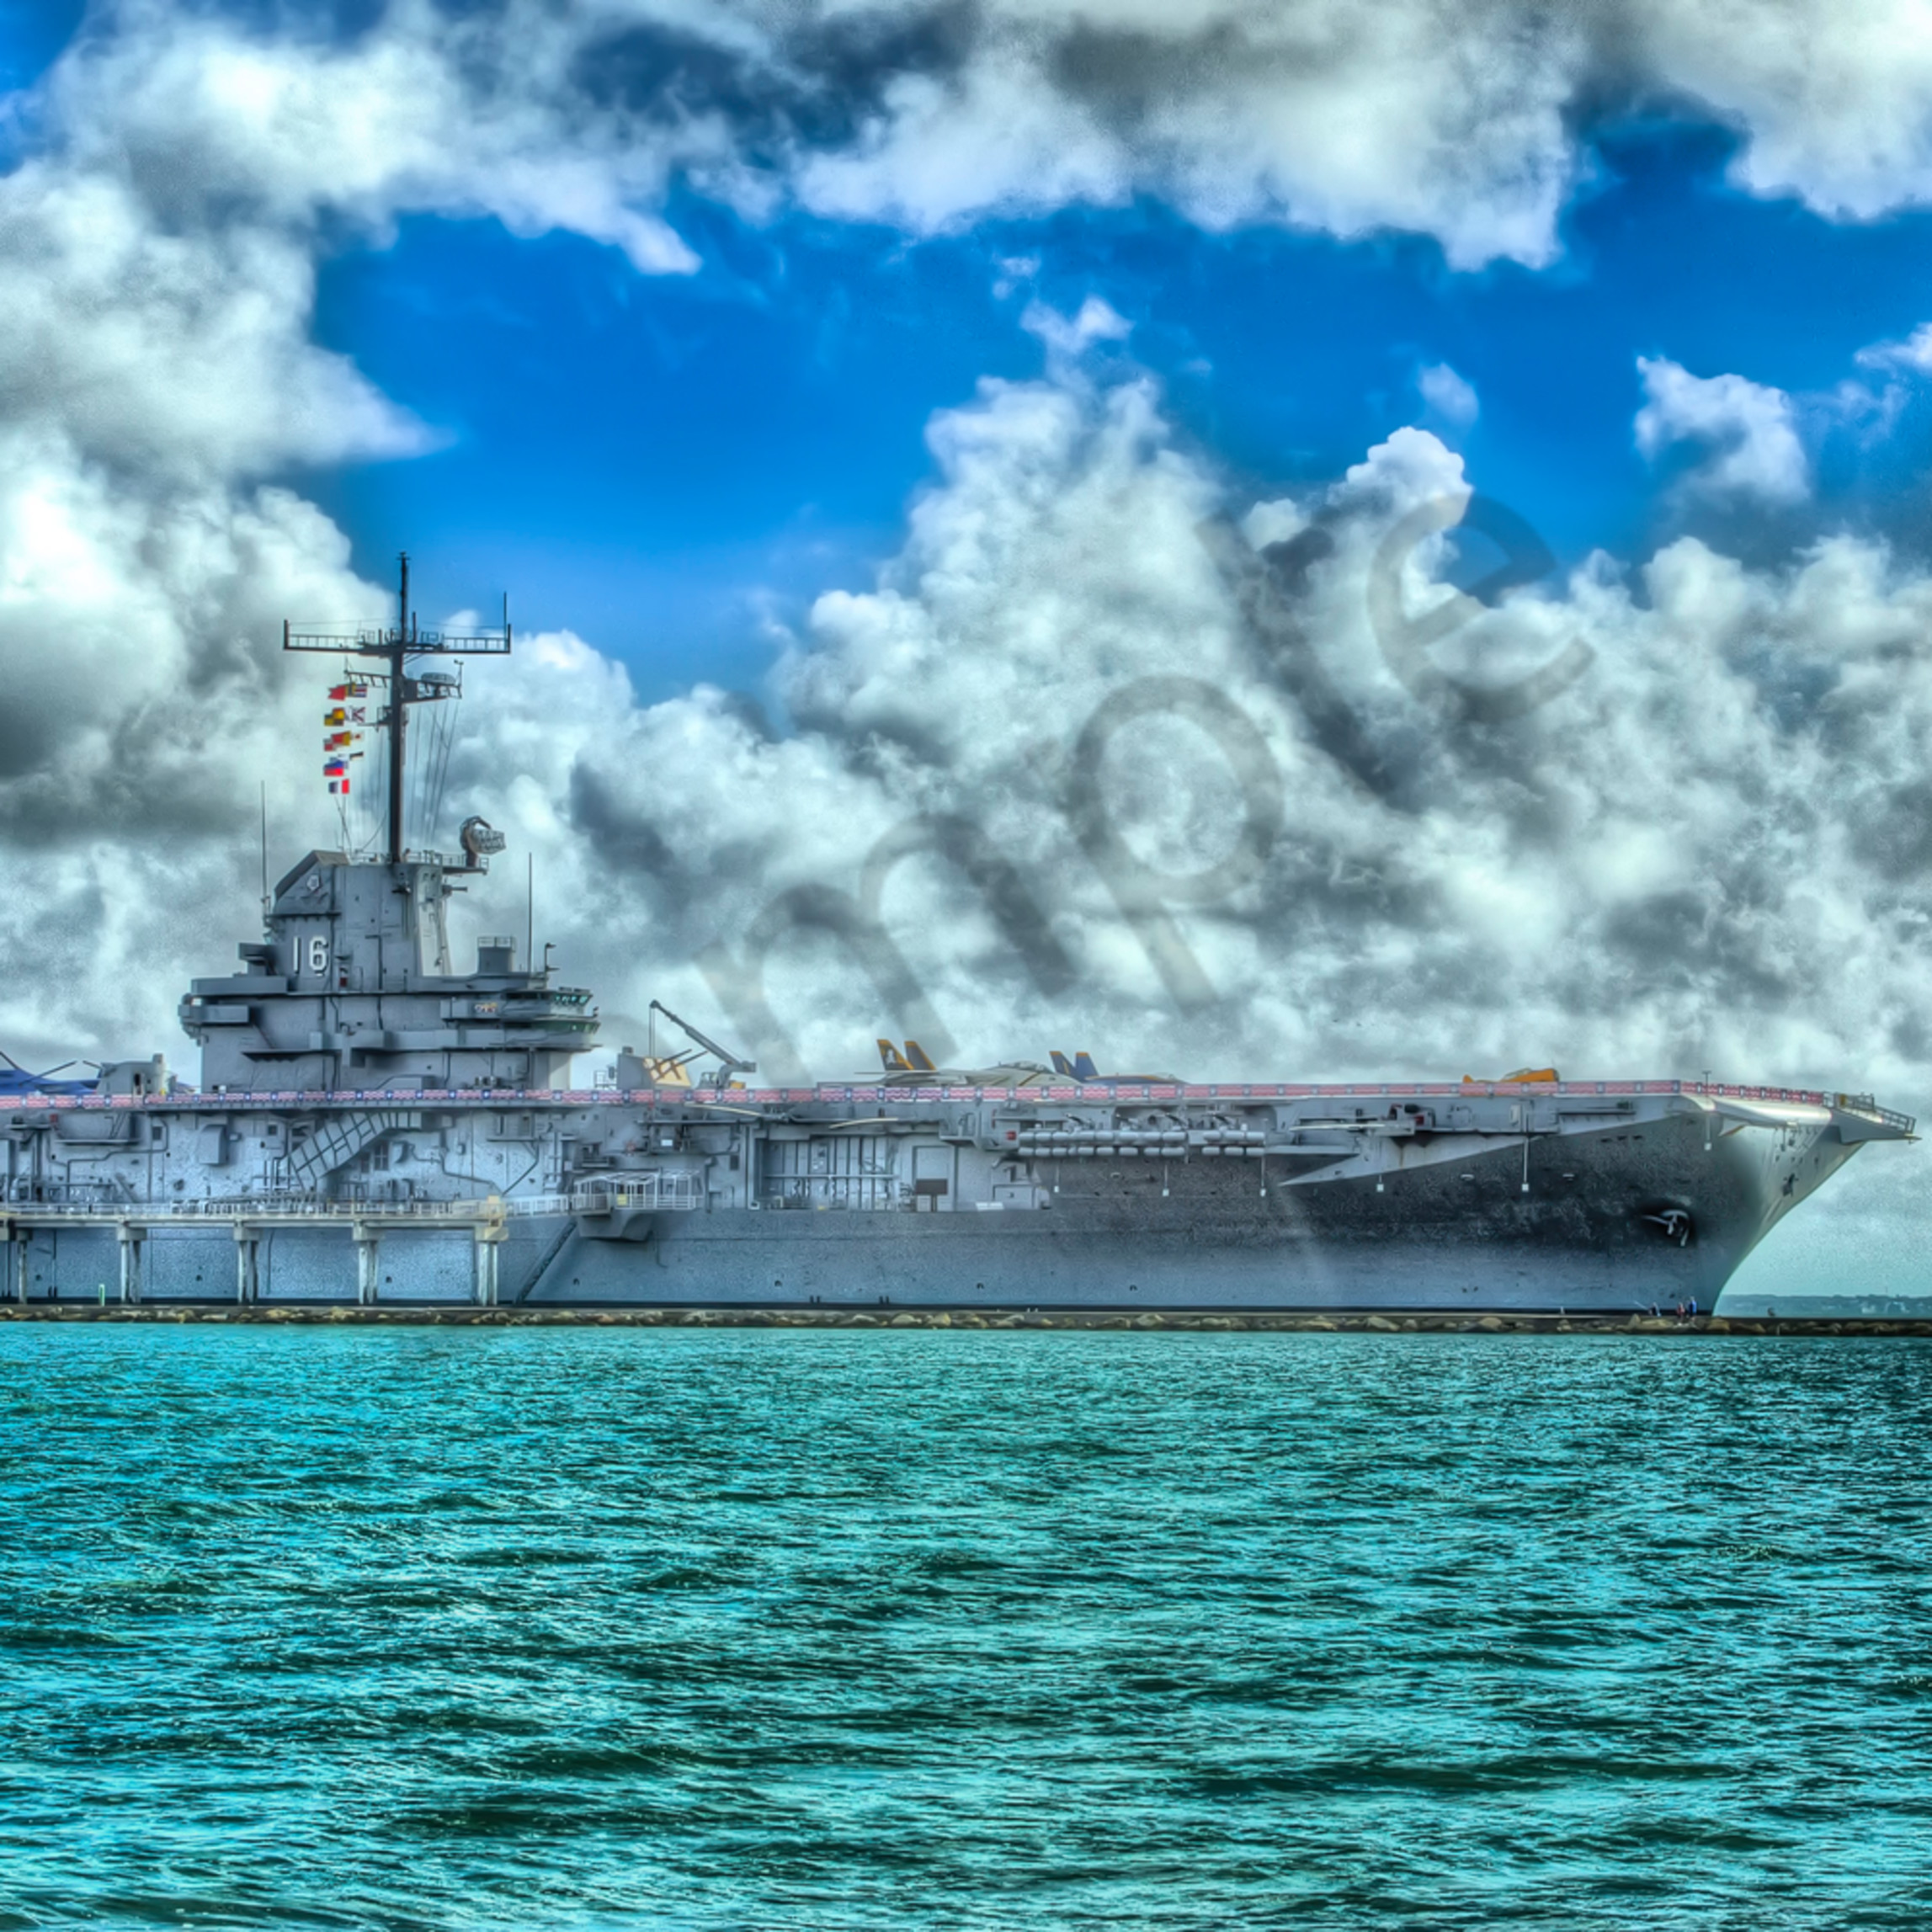 Uss lexington om0h3r